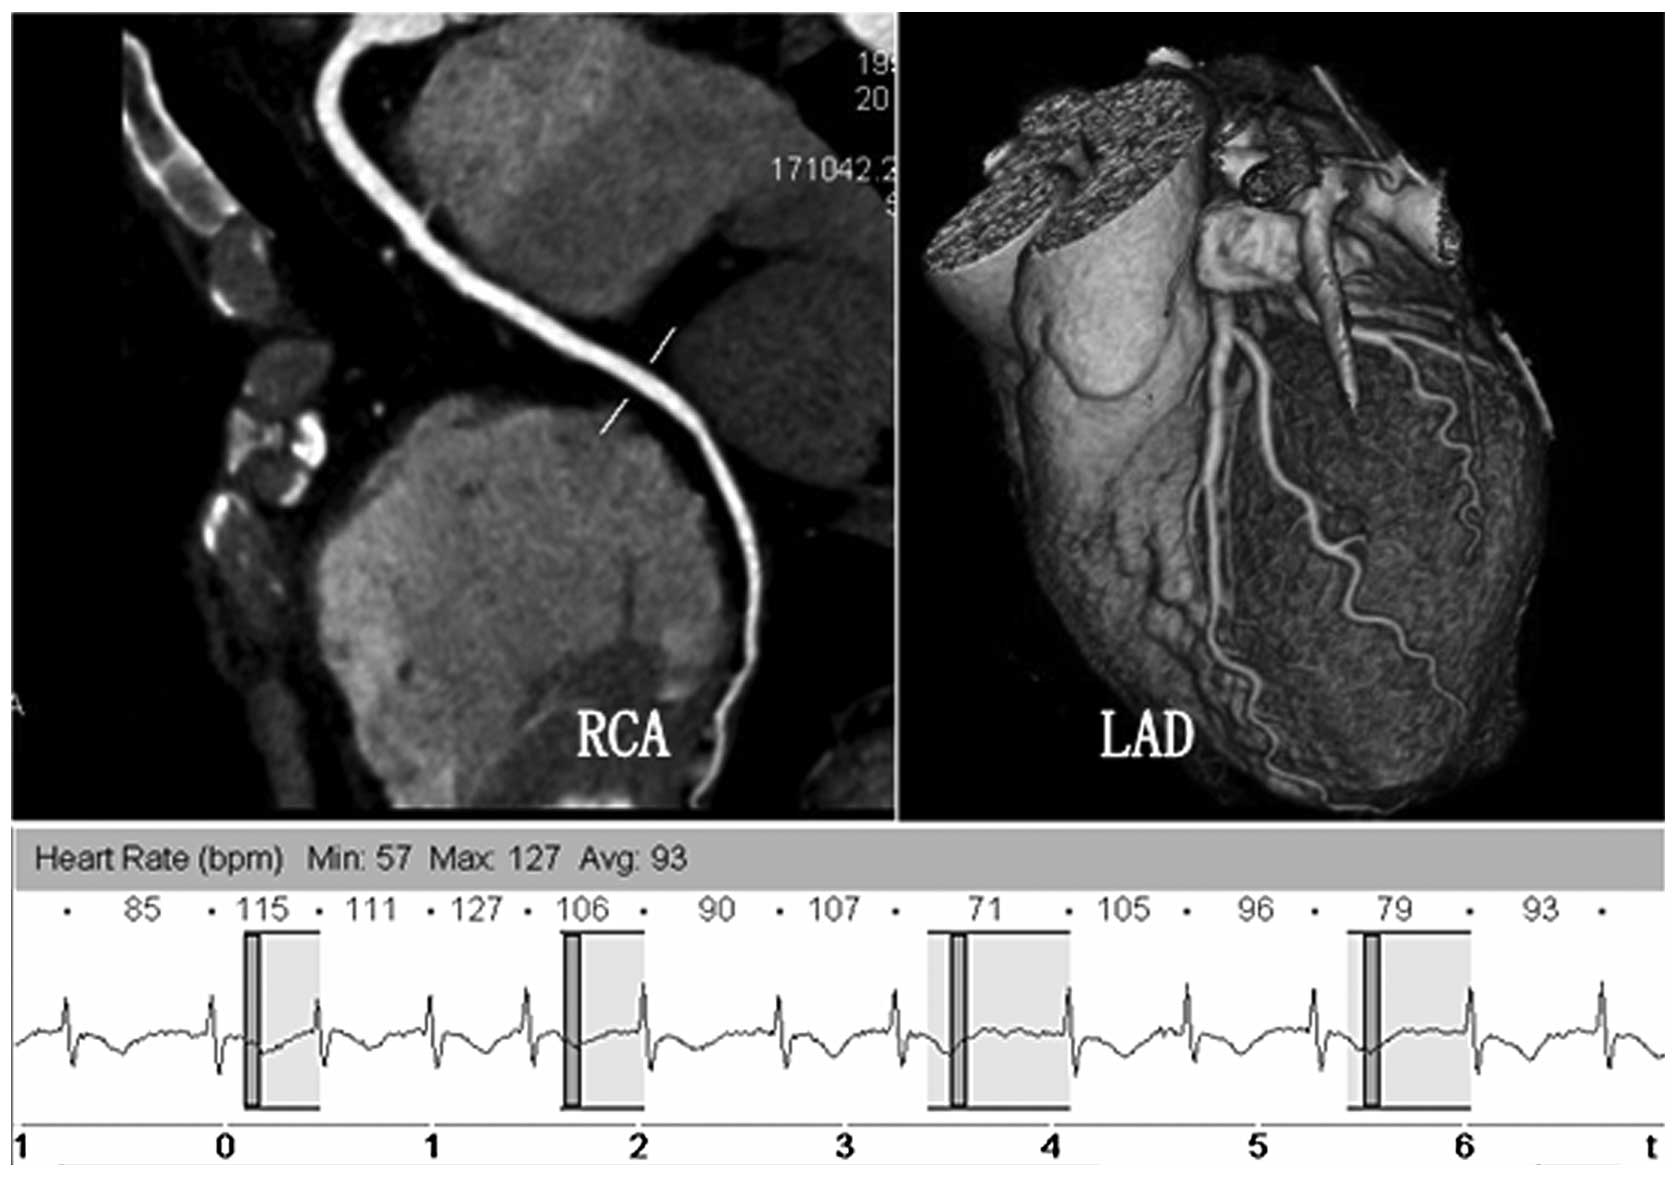 Adaptive Prospective Ecg Triggered Sequence Coronary Angiography In